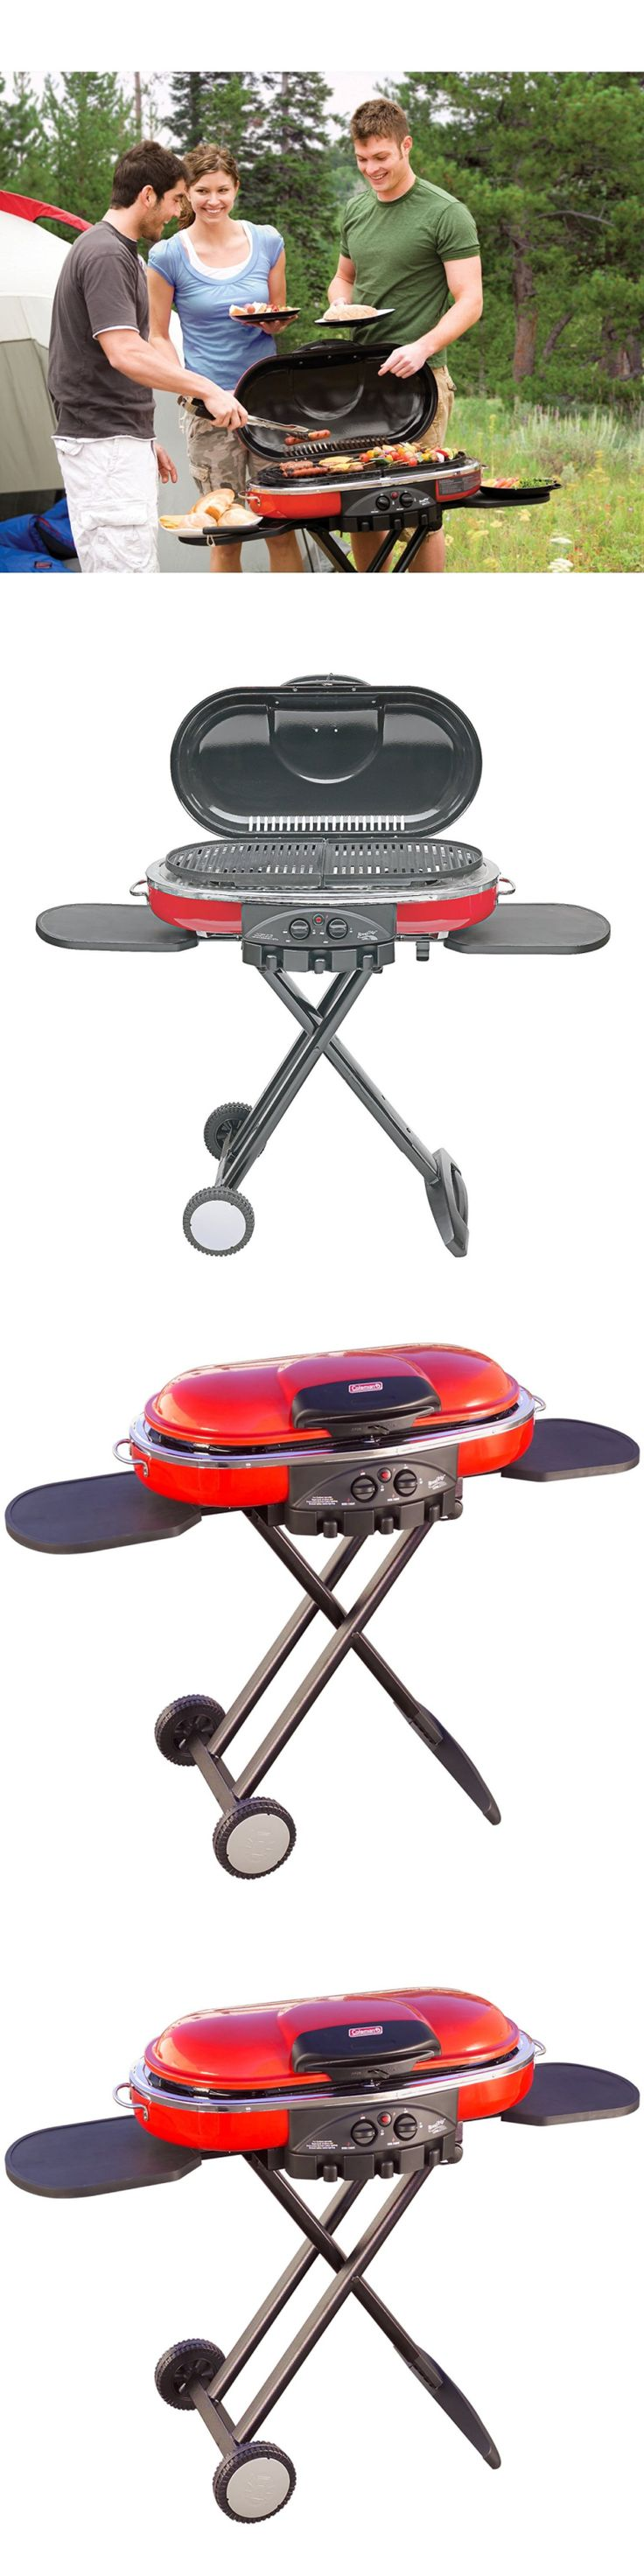 Camping BBQs and Grills 181388: Portable Propane Gas Grill Griddle Outdoor Folding Rv Camper Patio Gas Grill -> BUY IT NOW ONLY: $189.58 on eBay!